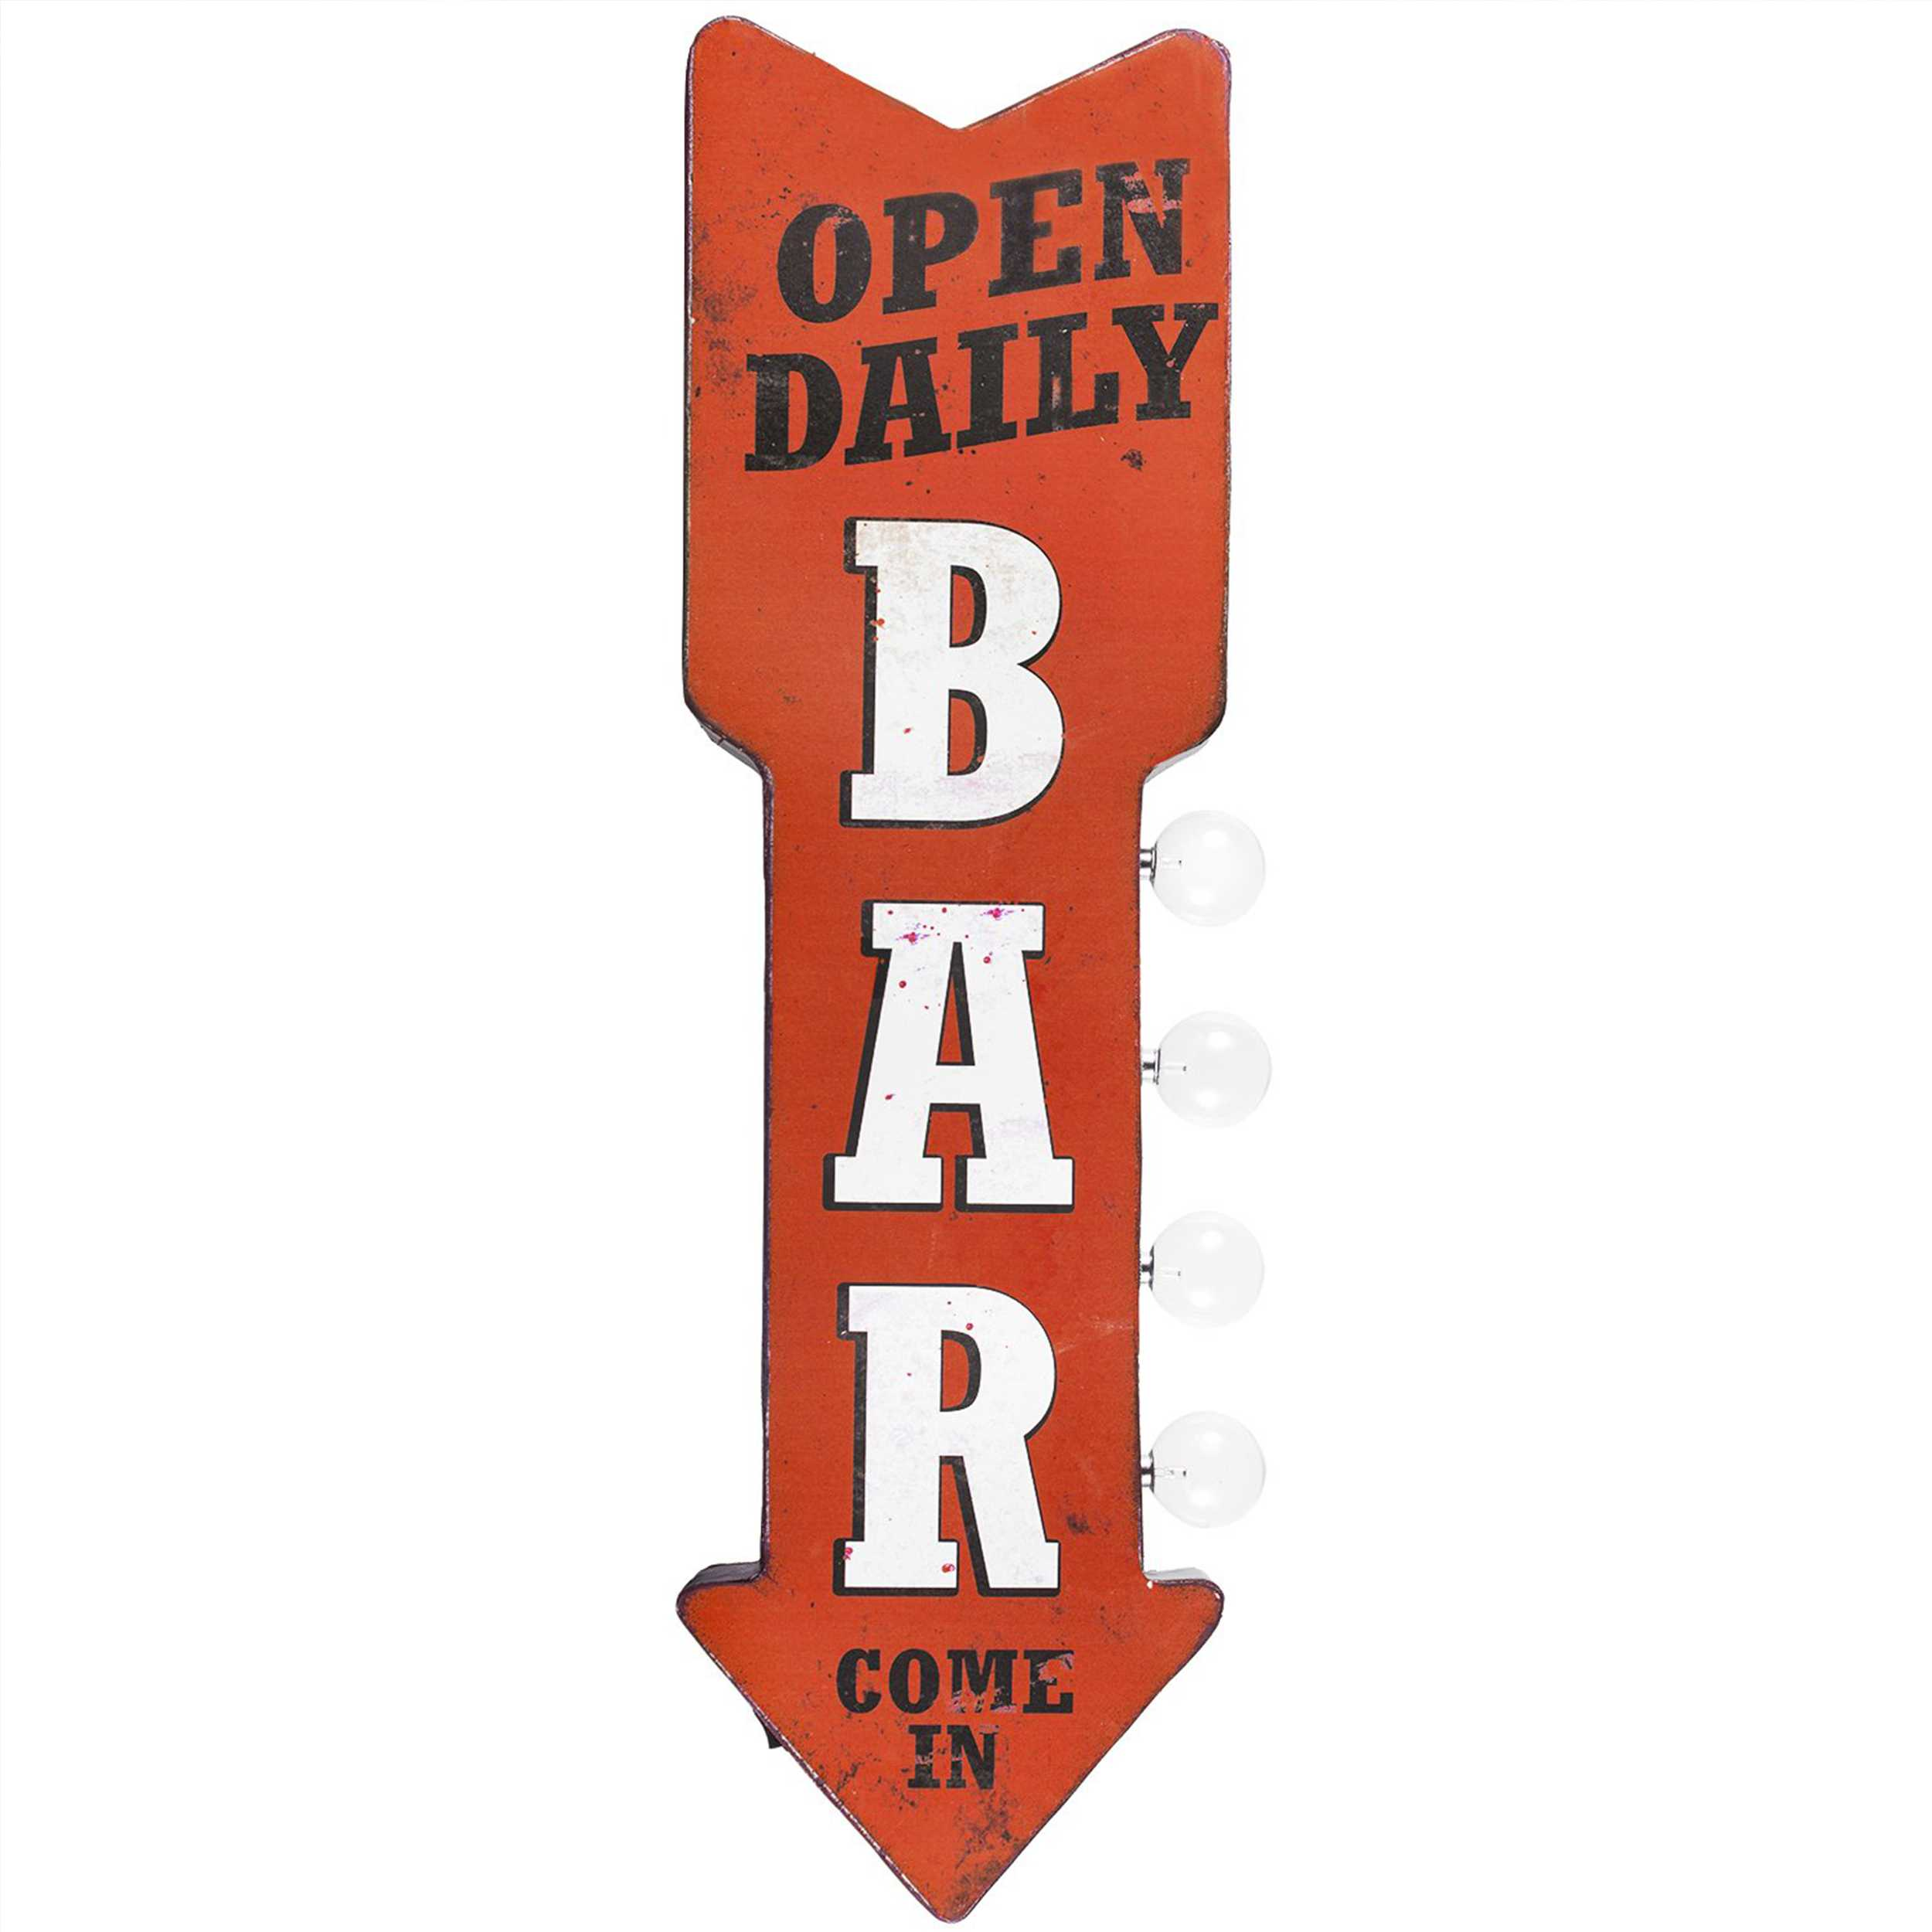 Vintage Two Sided Led Sign - Bar Arrow